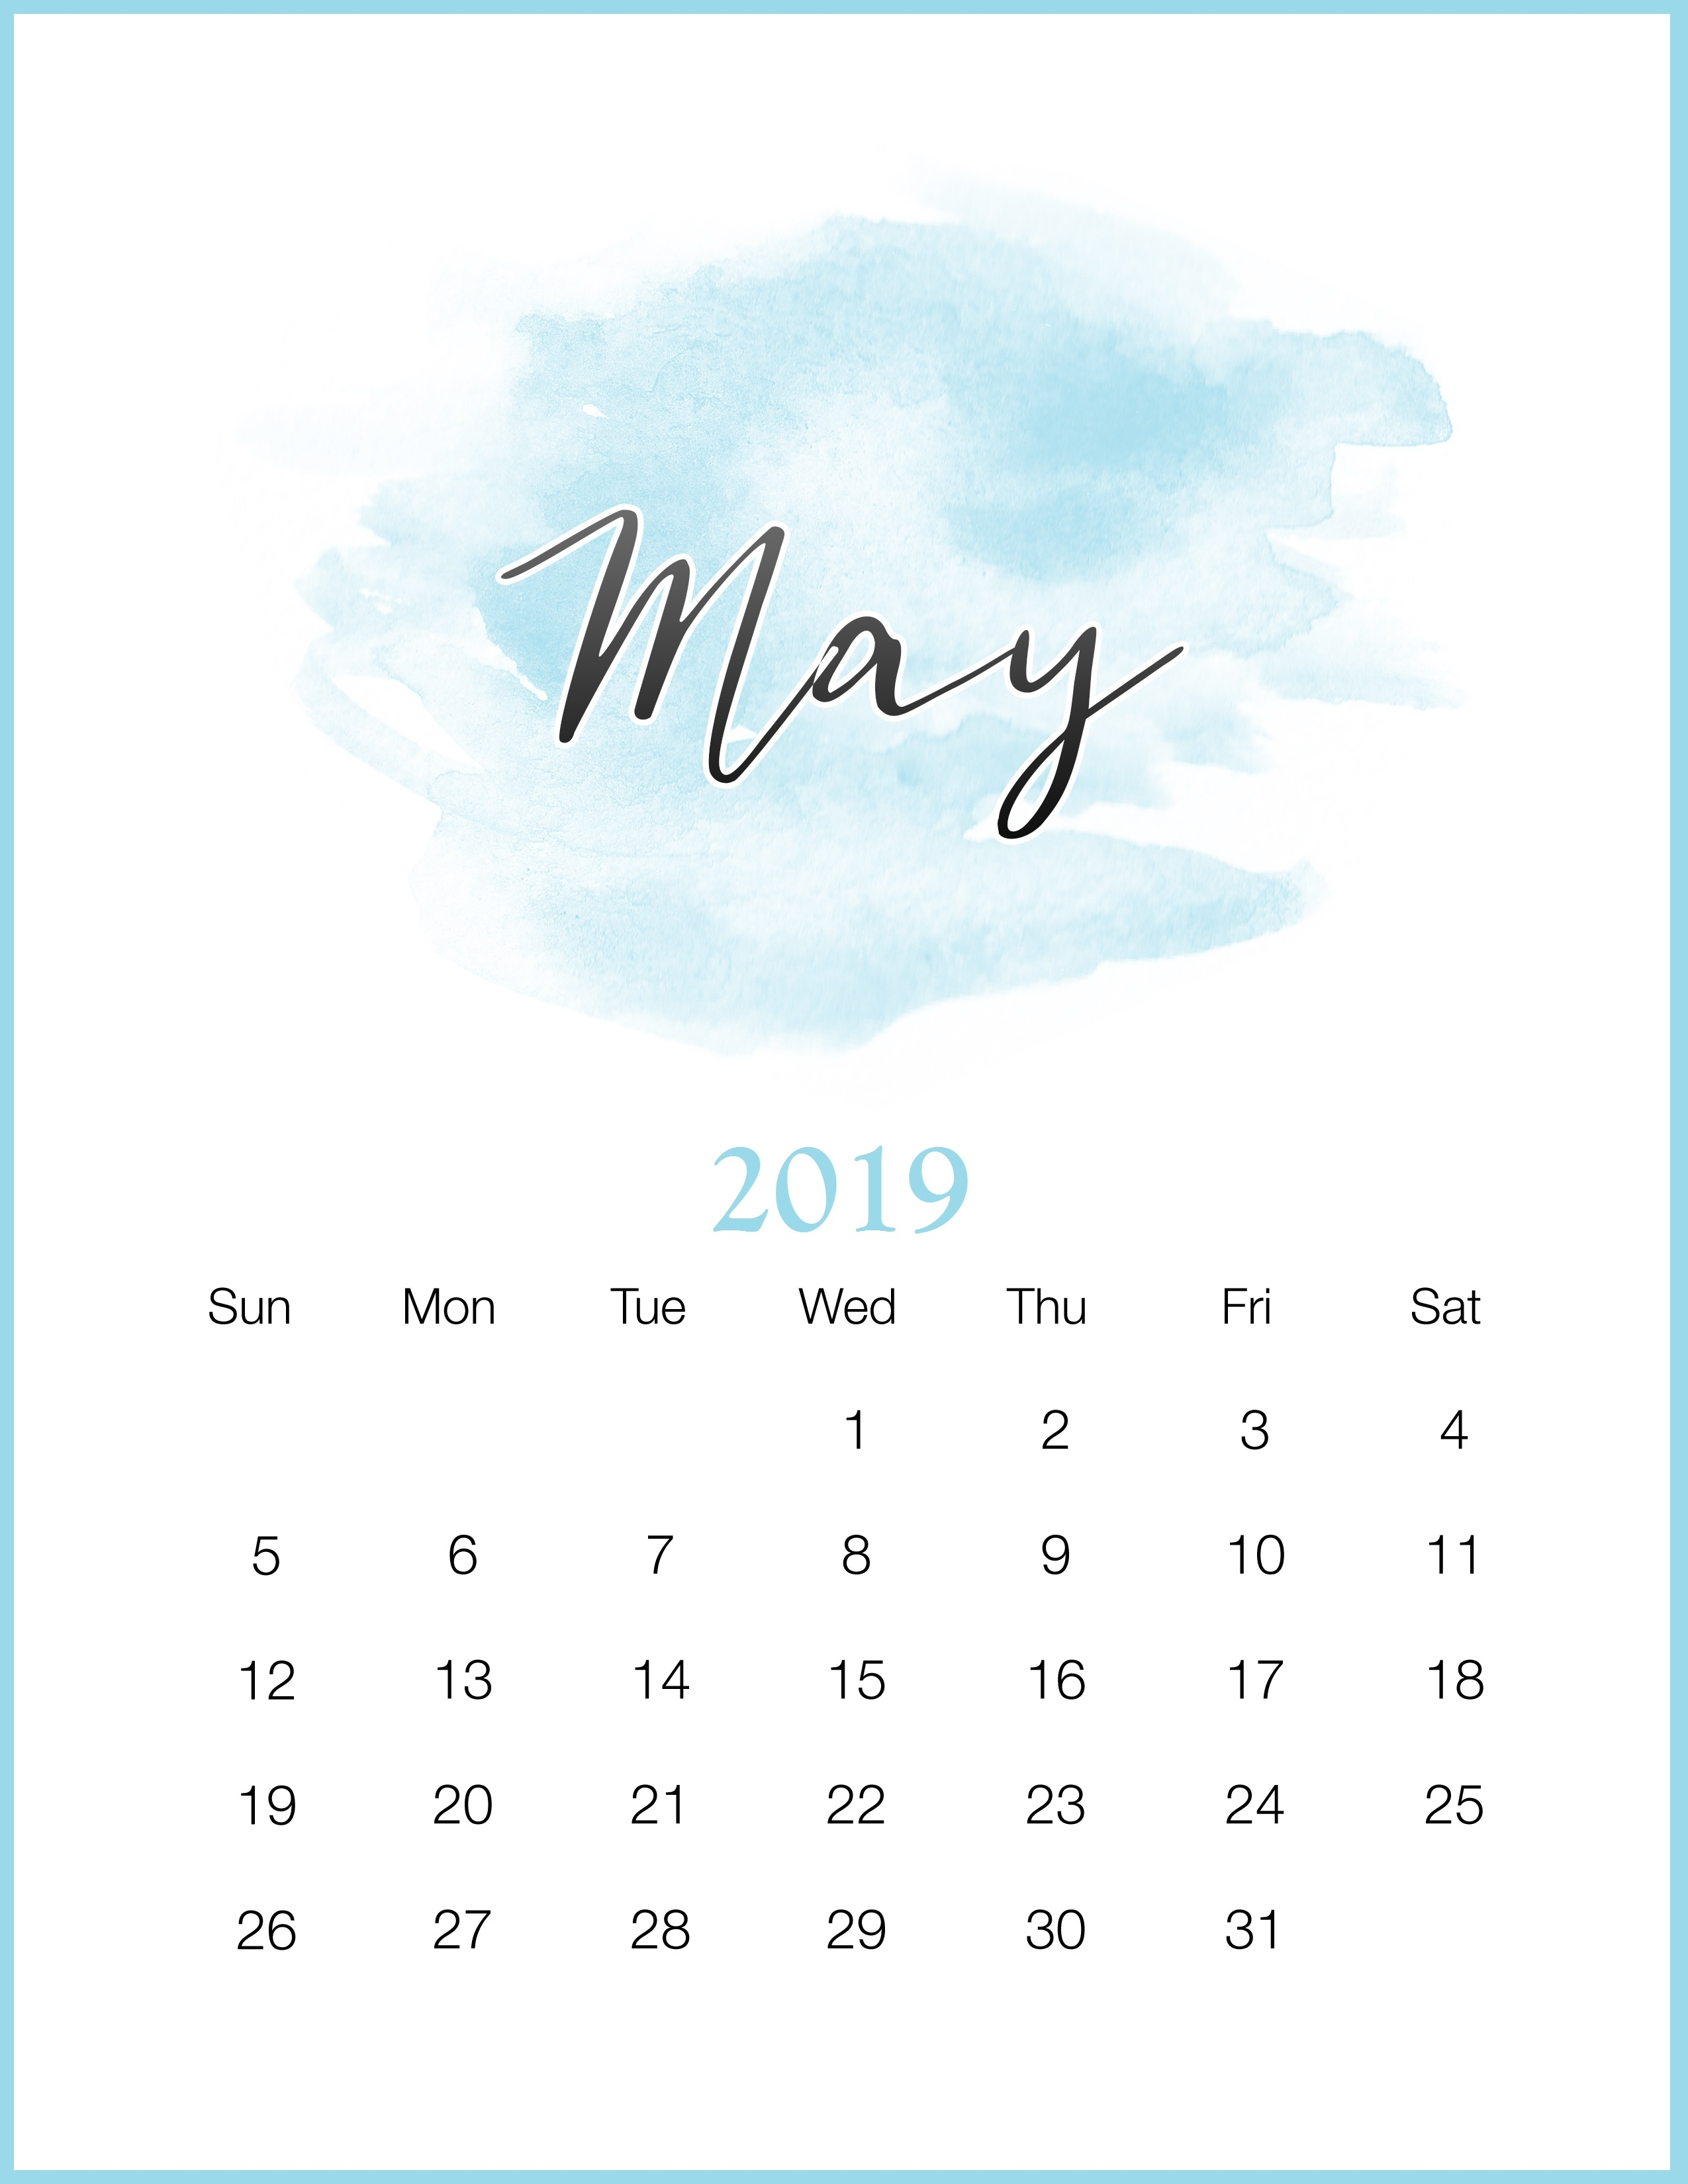 watercolor 2019 monthly printable calendar calendar 2019::May 2019 Desk Calendar